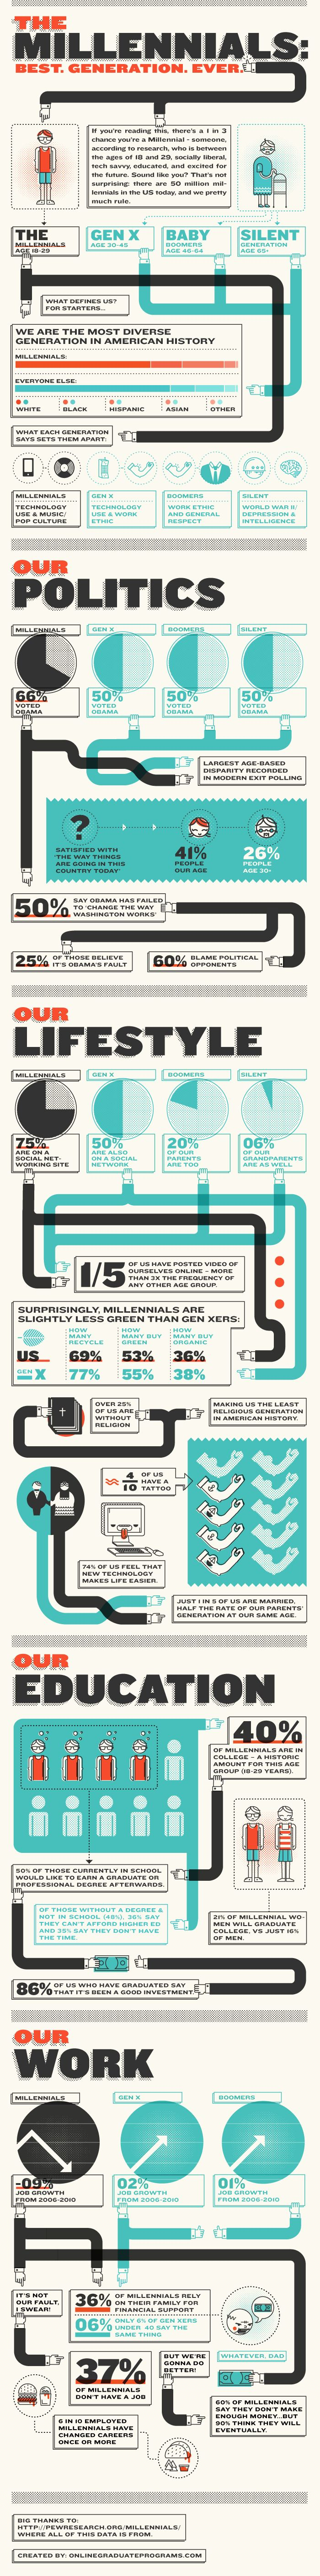 Looking for more info on Millennials?  Great infographic, gives a good snapshot and some very interesting data points.